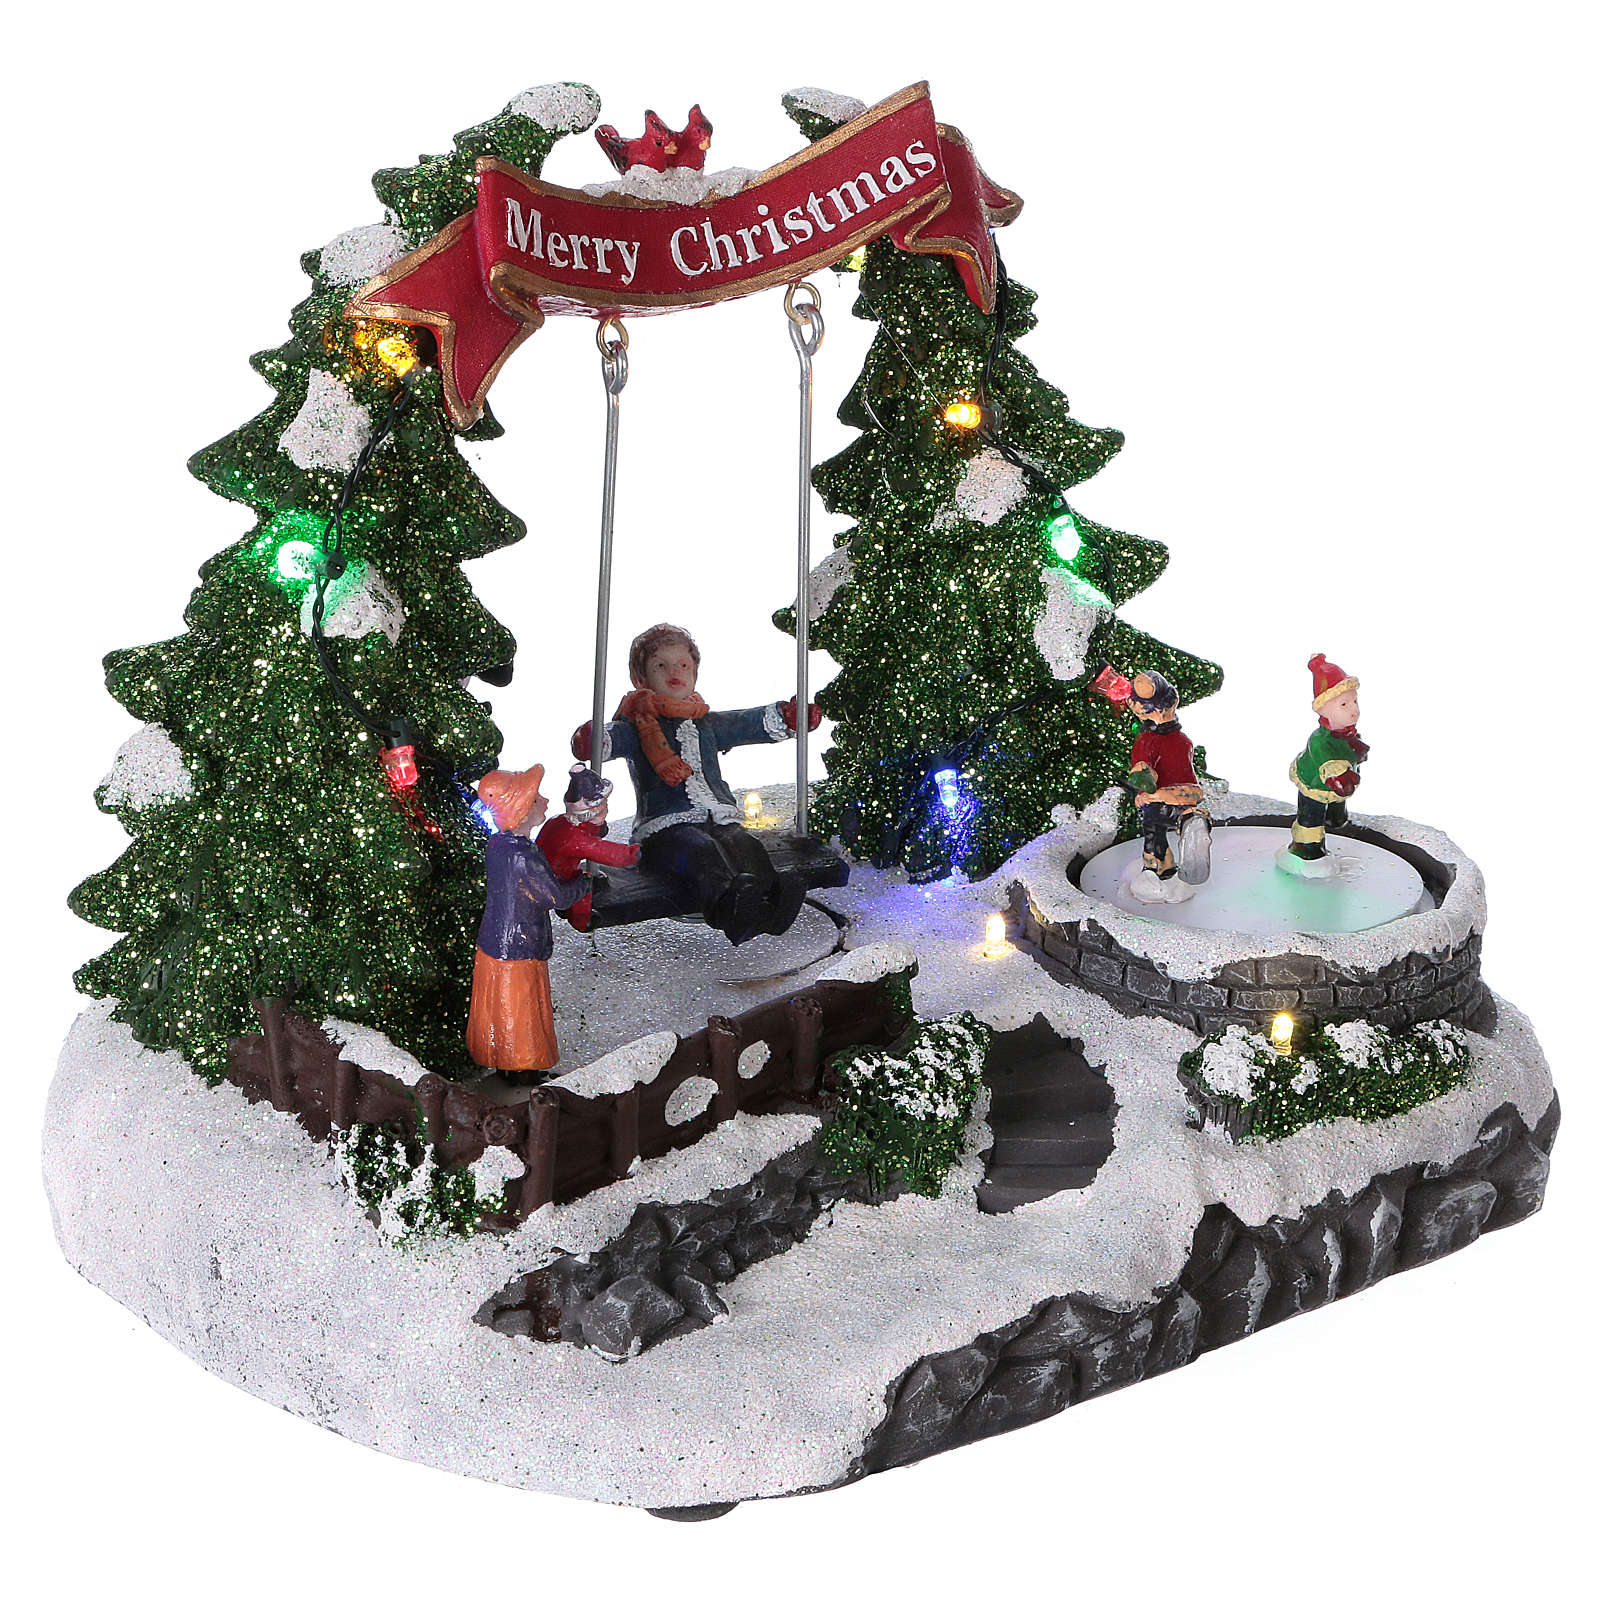 Christmas Holiday Scene 20x25x20 cm with Moving Skaters and Swing Battery Powered 3